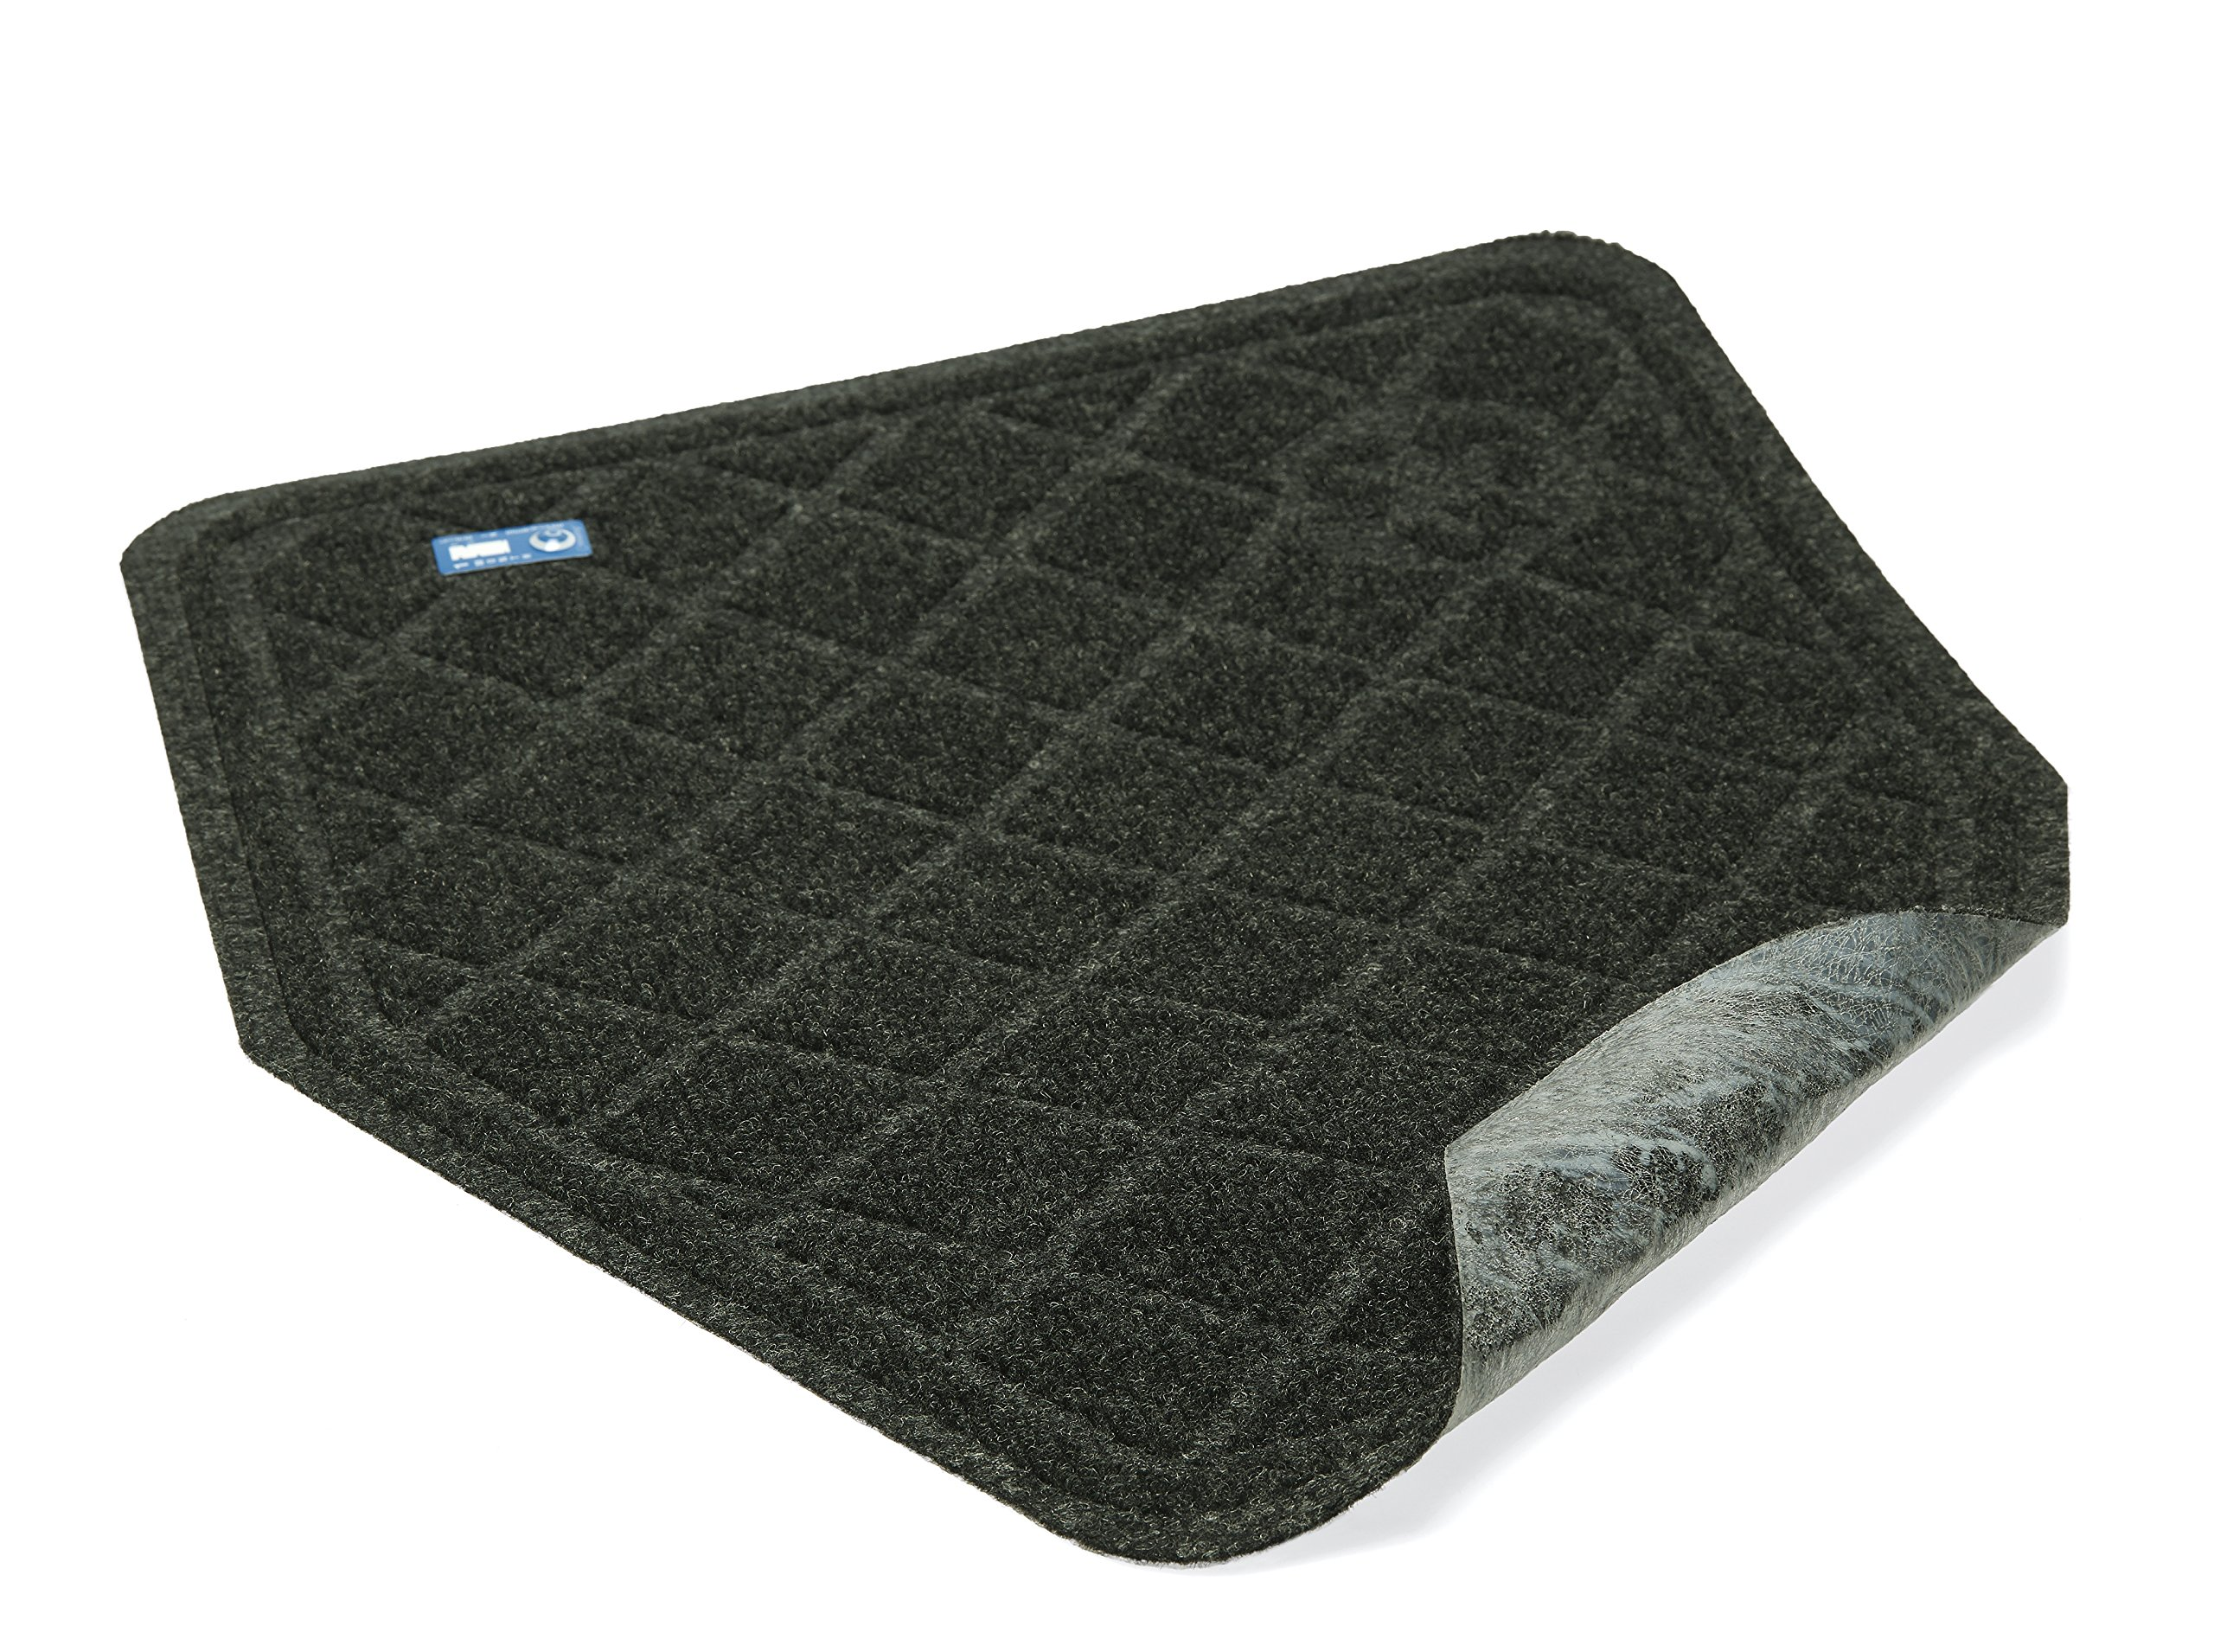 CleanShield Antimicrobial Non-Slip 30-Day Disposable Urinal Mat by M+A Matting (Charcoal, Case of 6)